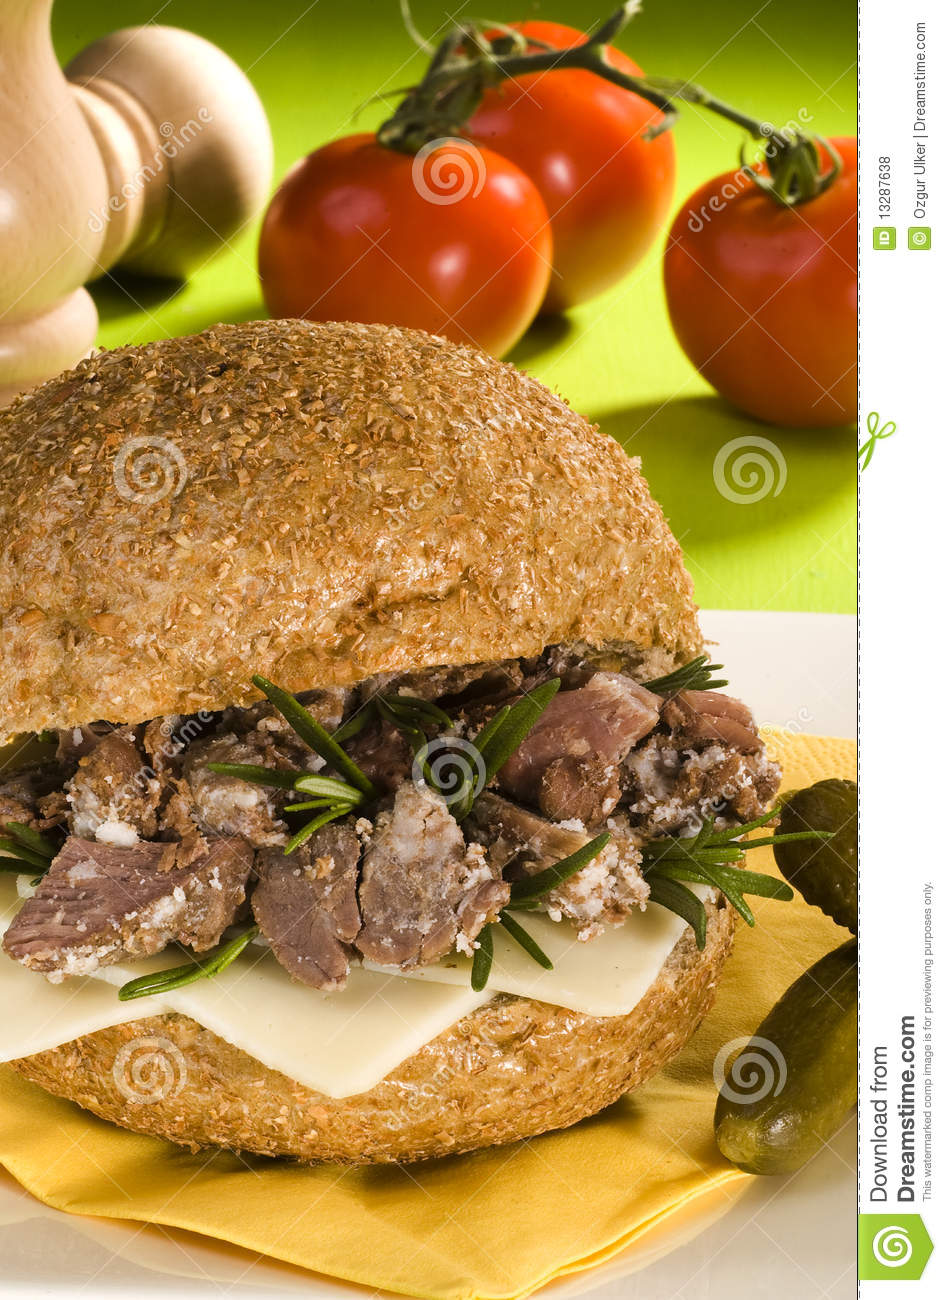 Dried Meat Sandwich Royalty Free Stock Photos   Image  13287638